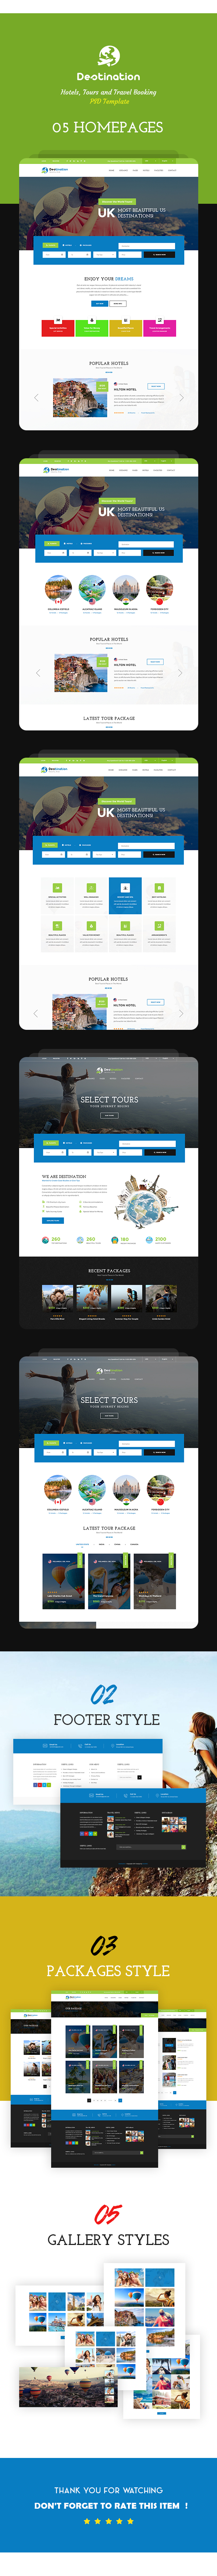 Destination - Hotels, Tours and Travel Booking PSD Template - 2